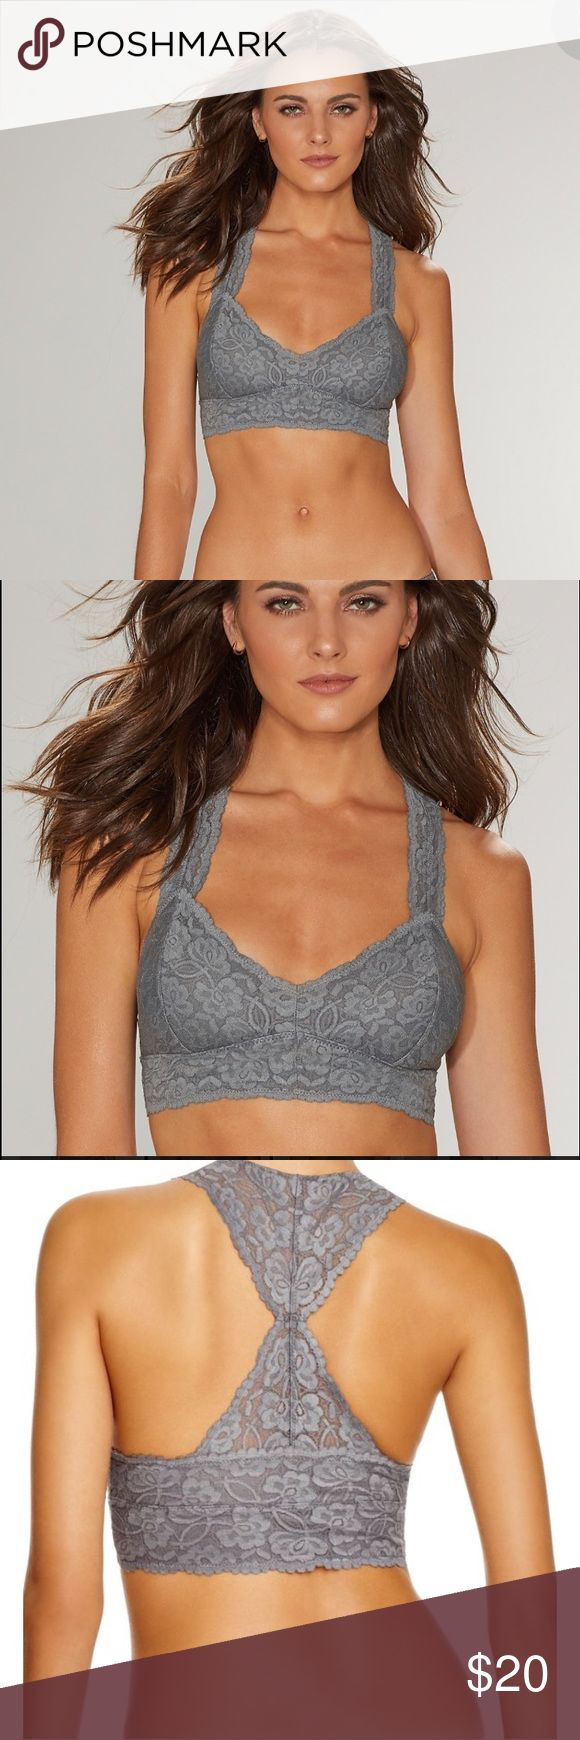 Free People, Racerback, Sexy Lace Bralette BNWOT💋 Free People, Gray Lace Blooming Bralette, Will make you feel like the sexiest girl in the world! Plunging V-neckline & seamed cups. Racerback straps meet with an elastic bottom band. Cups are lined. Self: 93% Nylon, 7% Spandex. Lining: 90% Nylon, 10% Spandex. Has a bit of PushUp. Size S Could fit M depending on measurements. Literally Wore ONCE to try on. So truly it's Brand New. 🙌💥🖤                                            Sleeveless…